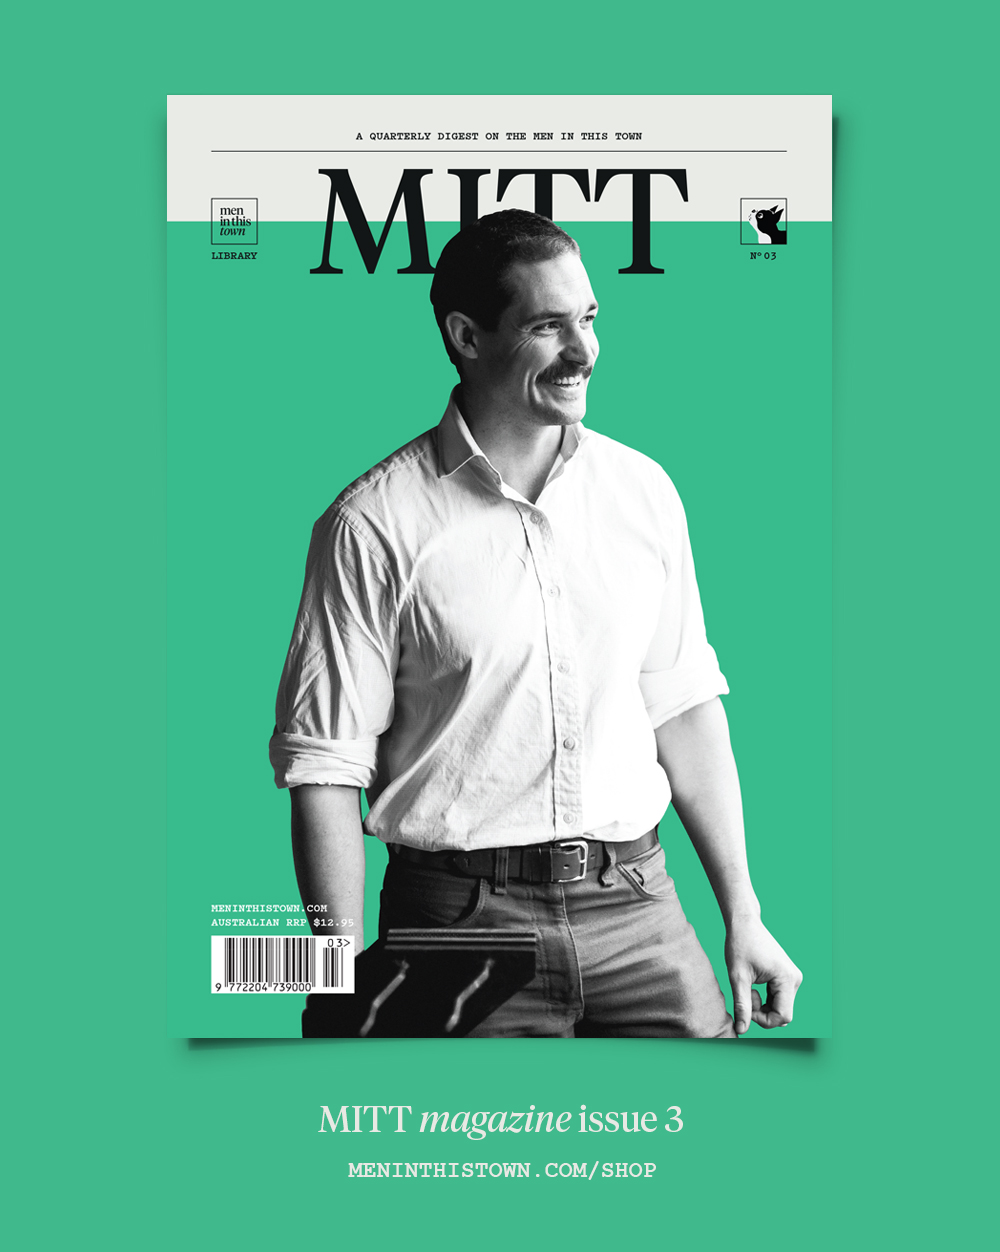 It's finally here,   MITT   issue 3 is now available to order at   The MITT Mrkt  ! To celebrate, we're offering ALL issues with  free shipping worldwide !   The third printed issue of   MITT   includes twelve new features on man made goods from around the world. Interviews with  Felix Chan  of  New Albion Sports  in Sydney, Melbourne based leathersmith  Tom Farrah  (our cover man),  Grey Fox  menswear blogger  David Evans , foodie  Gabriel Cabrera  in Mexico and London stylist  Glen Campbell . Plus written and photographic essays on  a soulful night  in Mississippi,  a reunion  between lovers, experiments with  bee-sting cream , summer fashion editorial shot  somewhere in Brooklyn , a comic take at  being #menswear  and a look at  menswear inspired women's street style  from Tokyo, London, Paris, New York,  Madrid and Melbourne.  Thank you the amazing contributors in this issue,  Guy Wilkinson ,  Adam Baidawi ,  Dick Carroll ,  James Cameron ,  Brook James ,  Joshua Lawrence ,  Jefferson Piers ,  Andrew Geeves ,  Natalie Shukur ,  Adam Nickel  and  David Urbanke .  Orders will start shipping early next week and will be on Austalian newsstands  September 18th . If you would like to become an international stockist,  please get in touch .